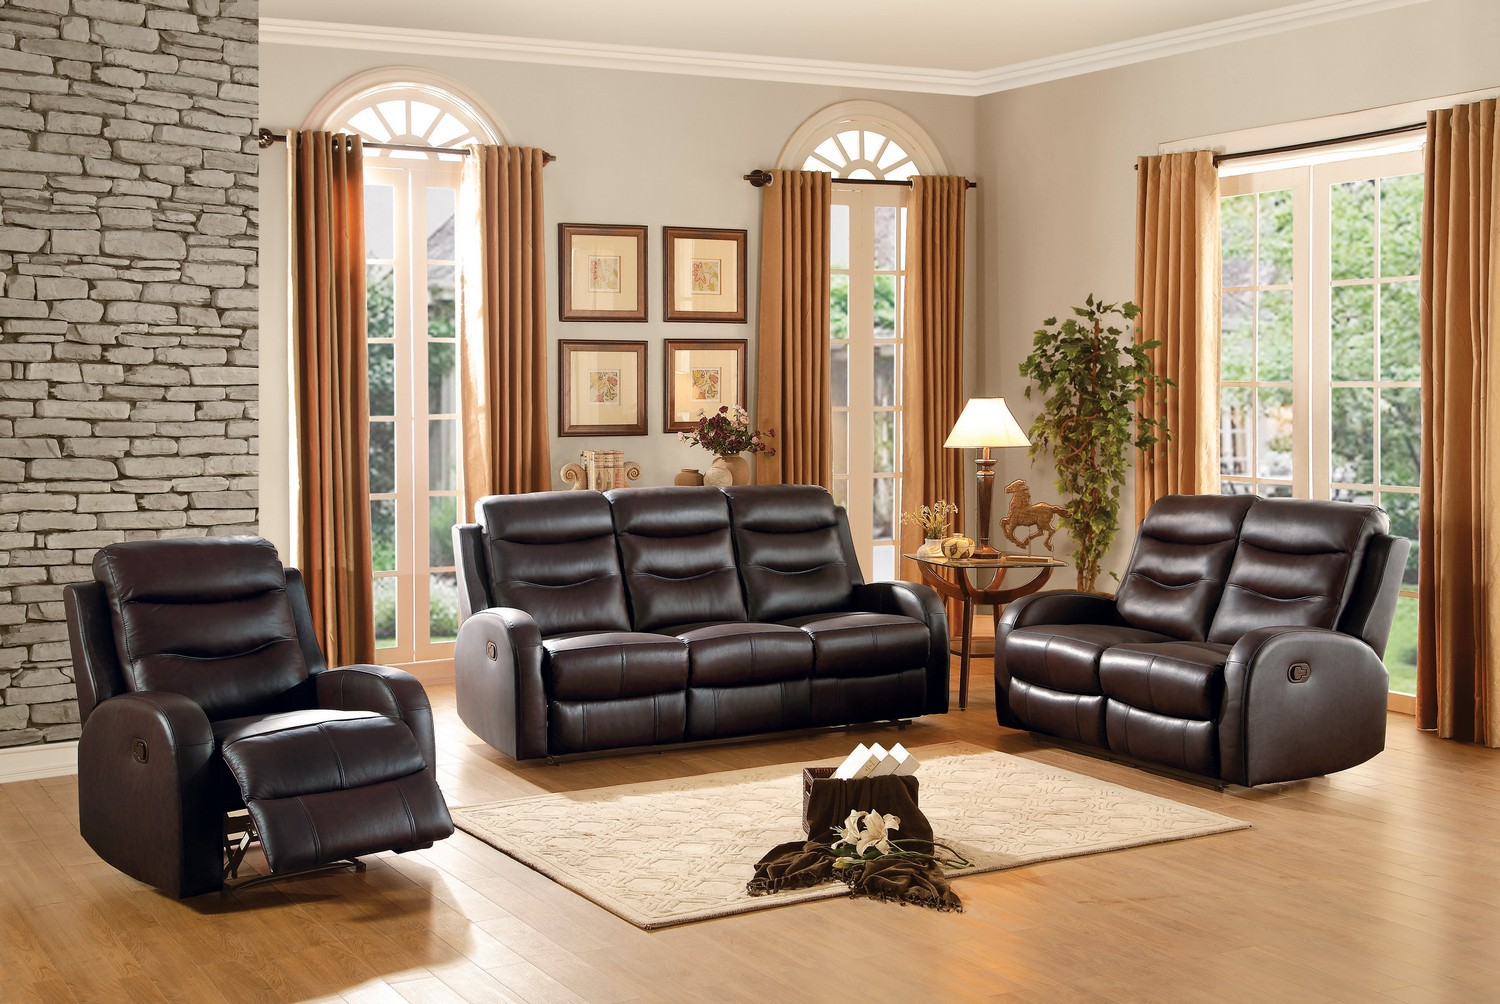 Homelegance Coppins Reclining Sofa Set - Top Grain Leather Match - Chocolate